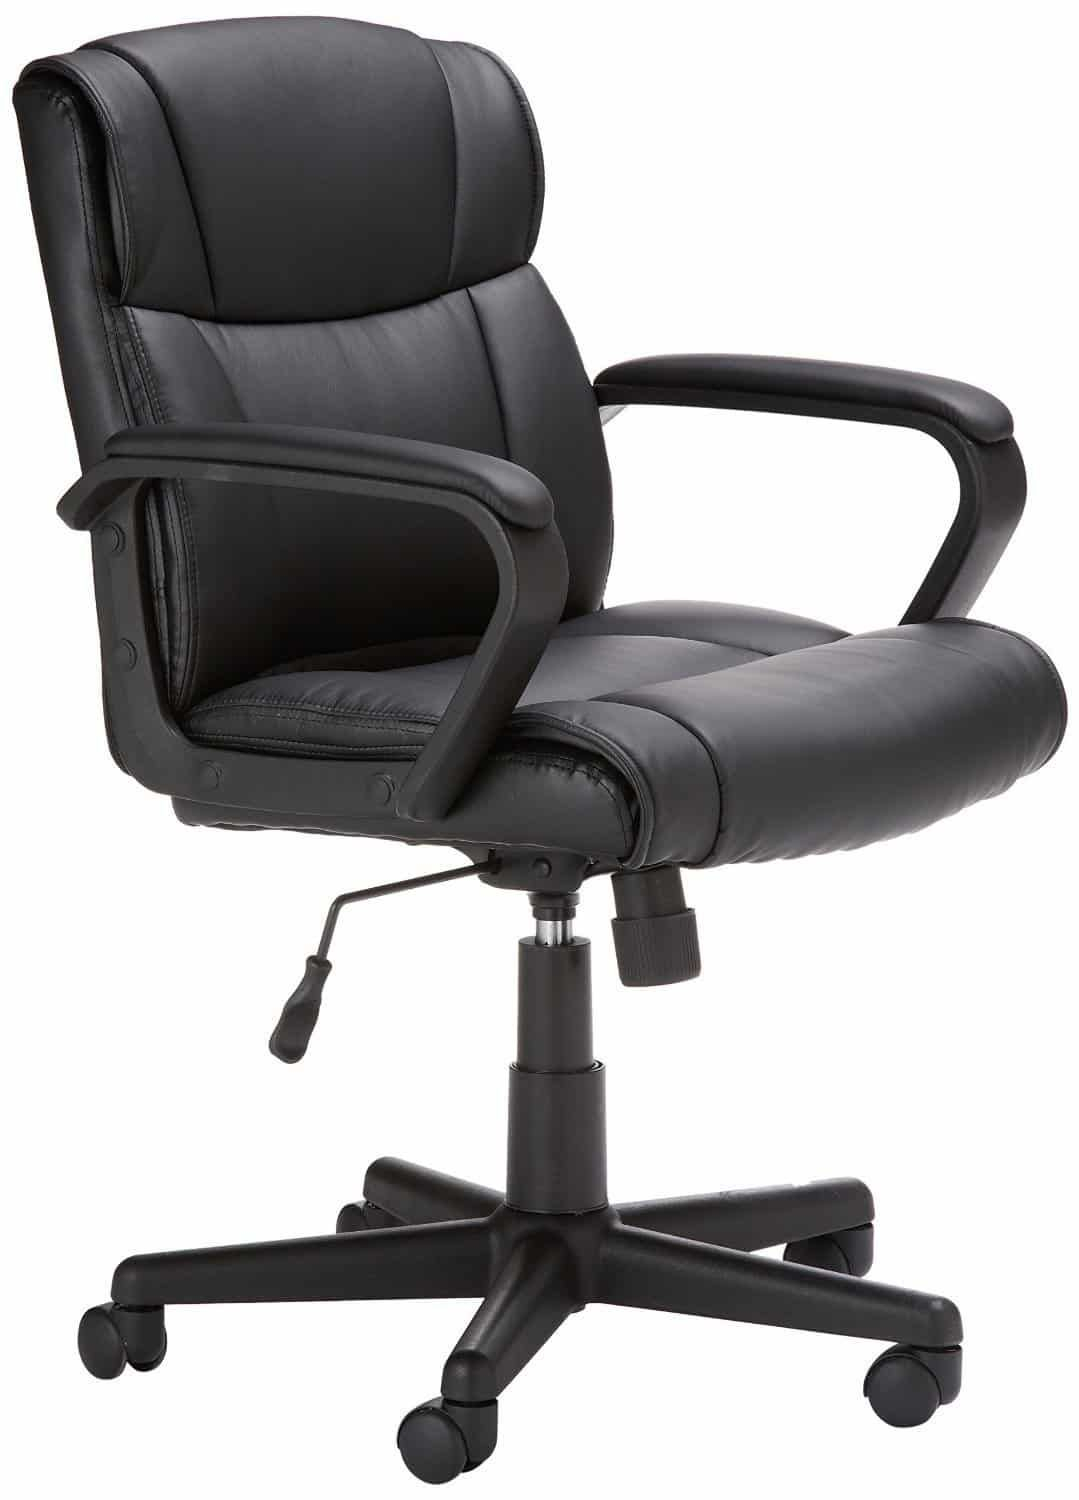 Top 10 Most Comfortable Office Chairs In 2019 Top 10 Most throughout dimensions 1079 X 1500